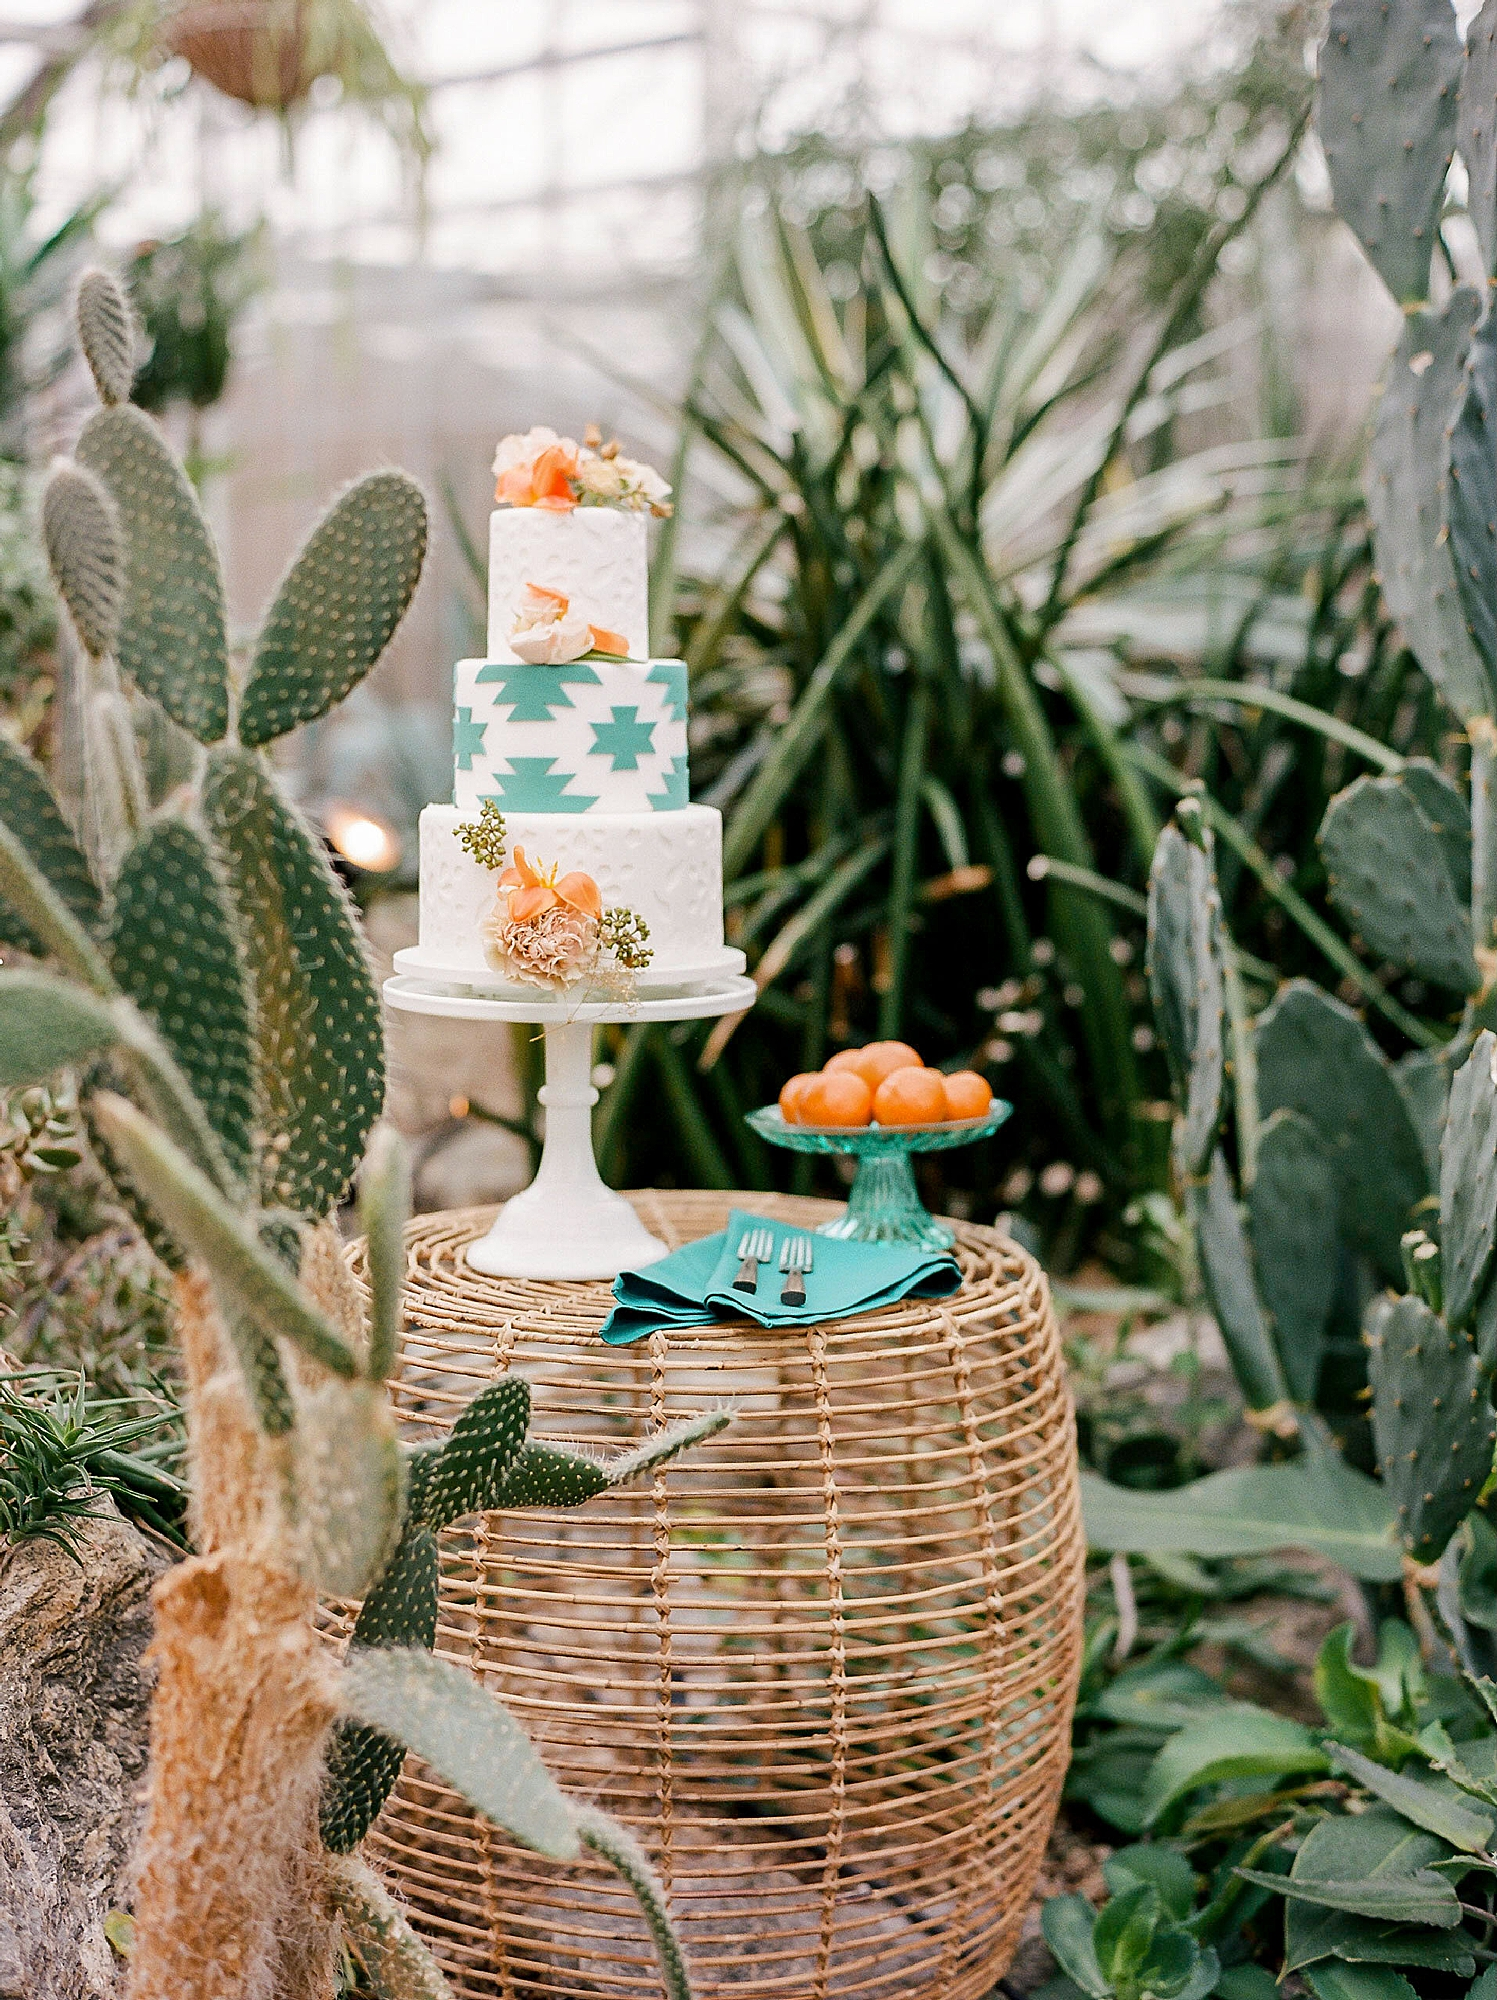 Colorful and Vibrant Wedding Photography at Fairmount Horticultural Center by Magdalena Studios 0007